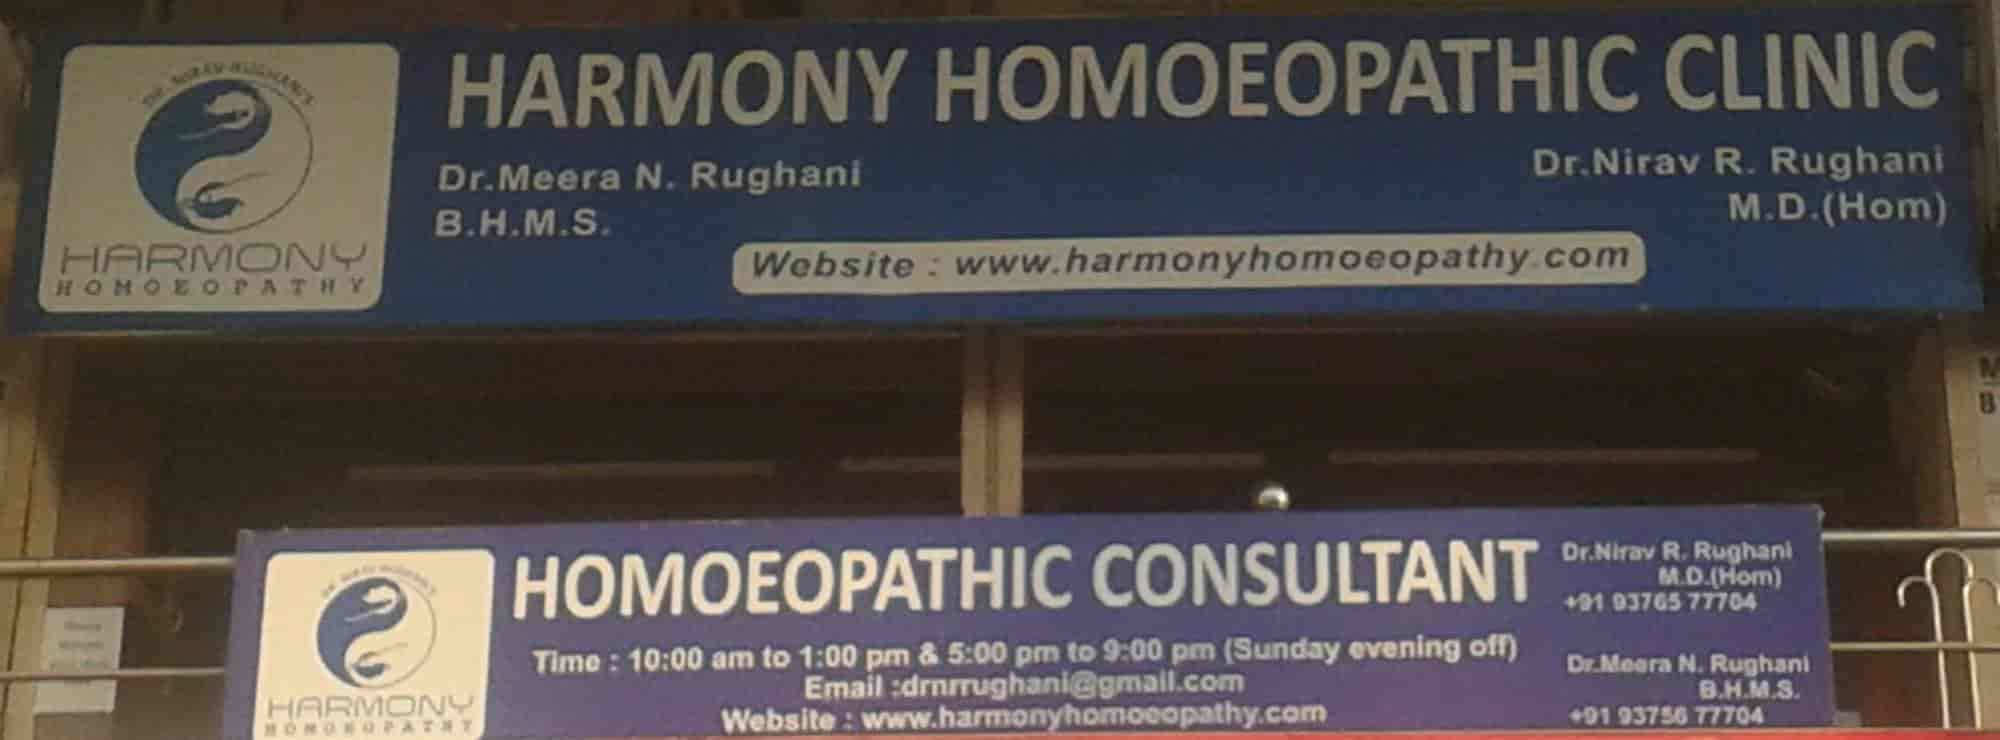 Harmony Homoeopathy Clinic - Amway Product Distributors